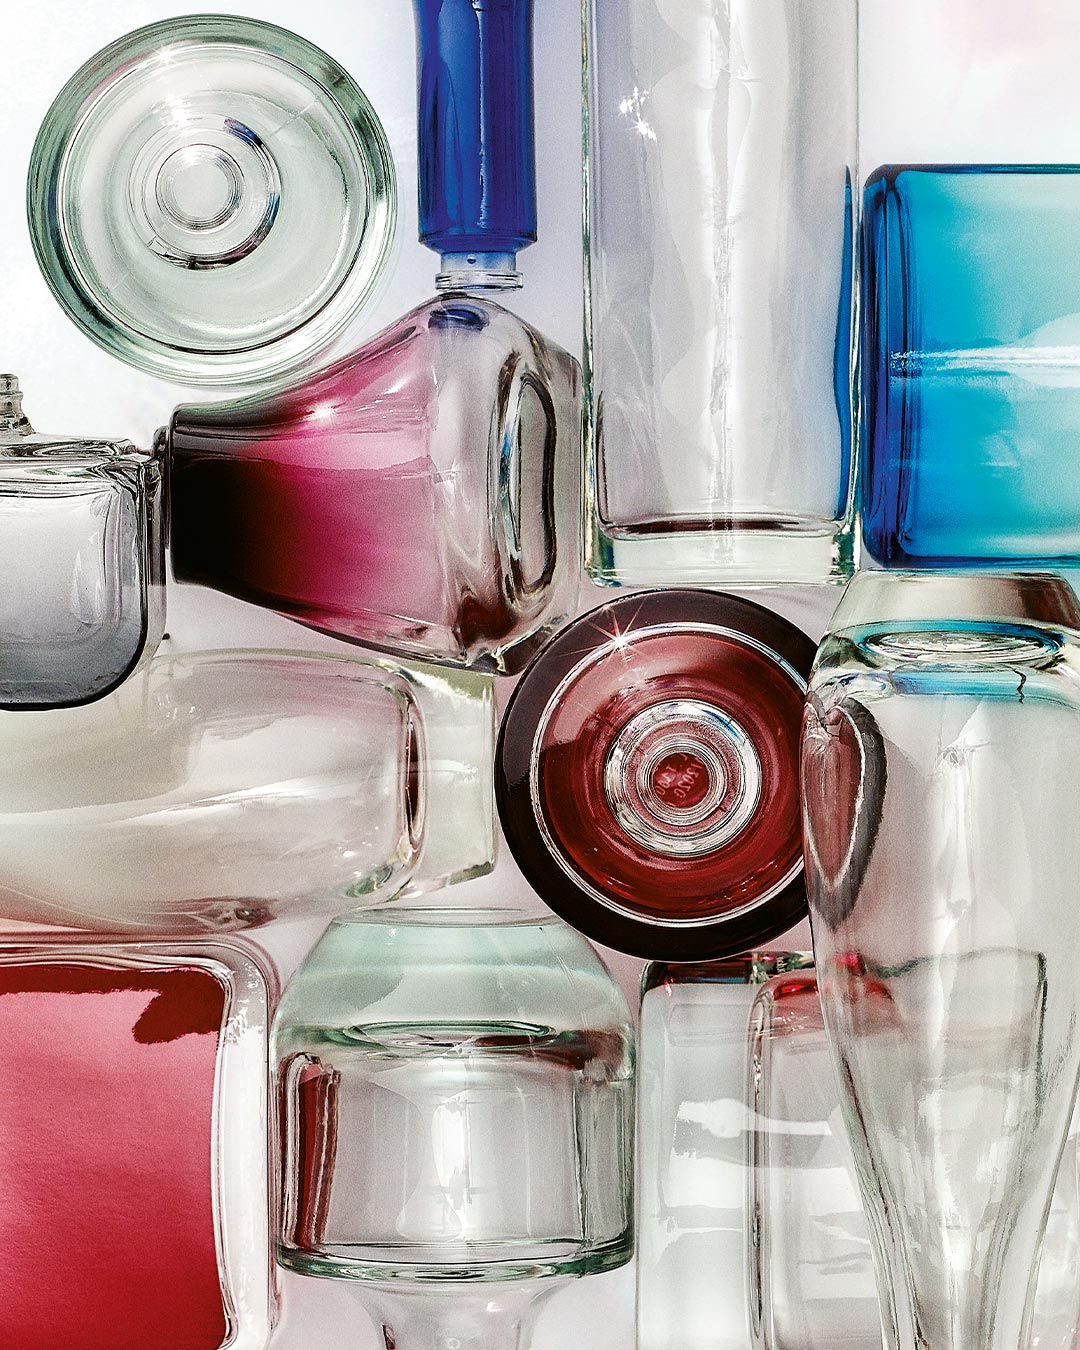 7 curious facts about the recycled glass that Natura uses